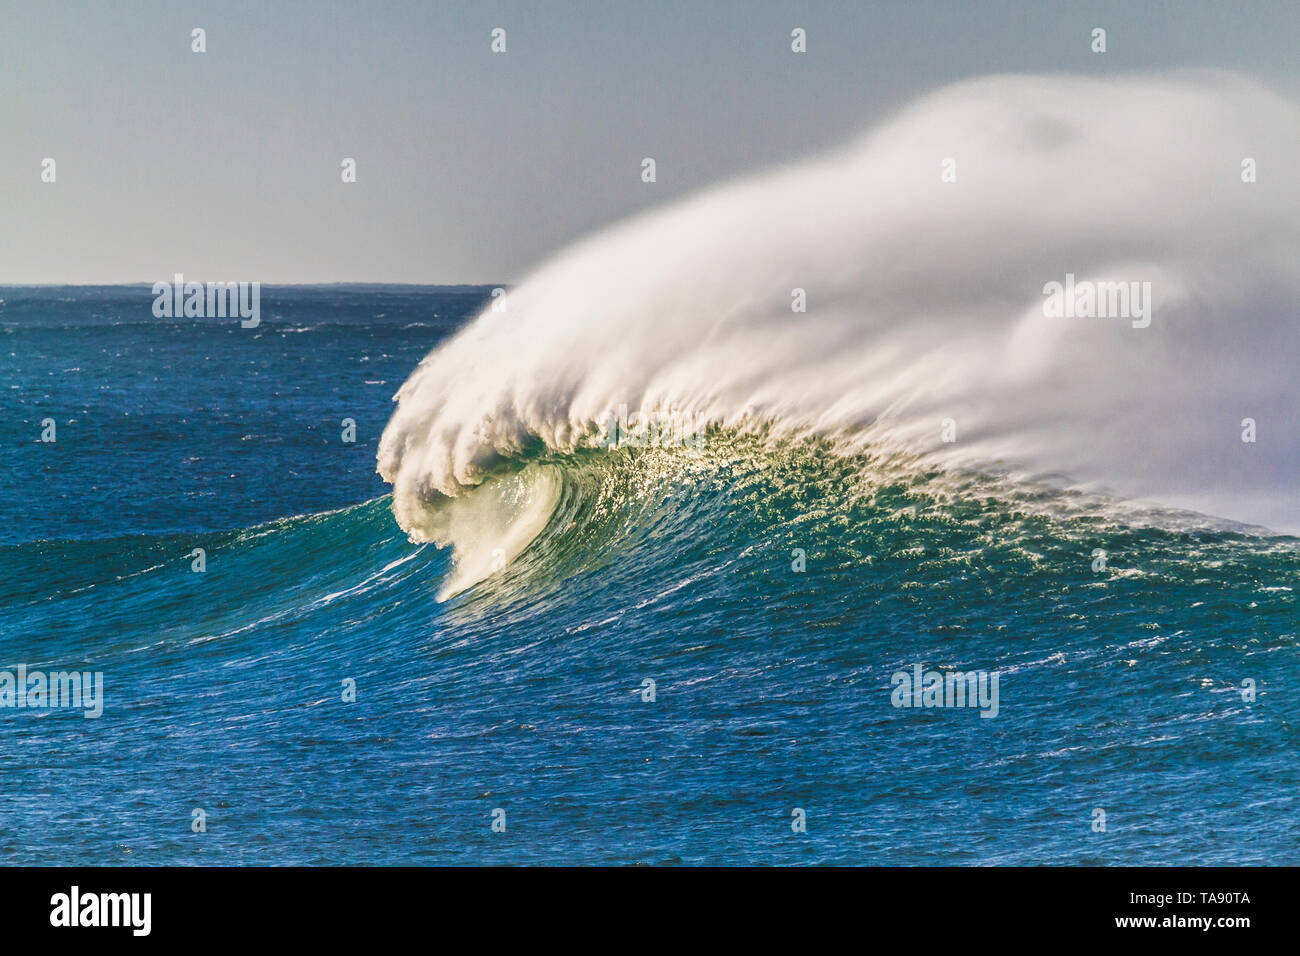 Large windblown wave breaking out to sea - Stock Image